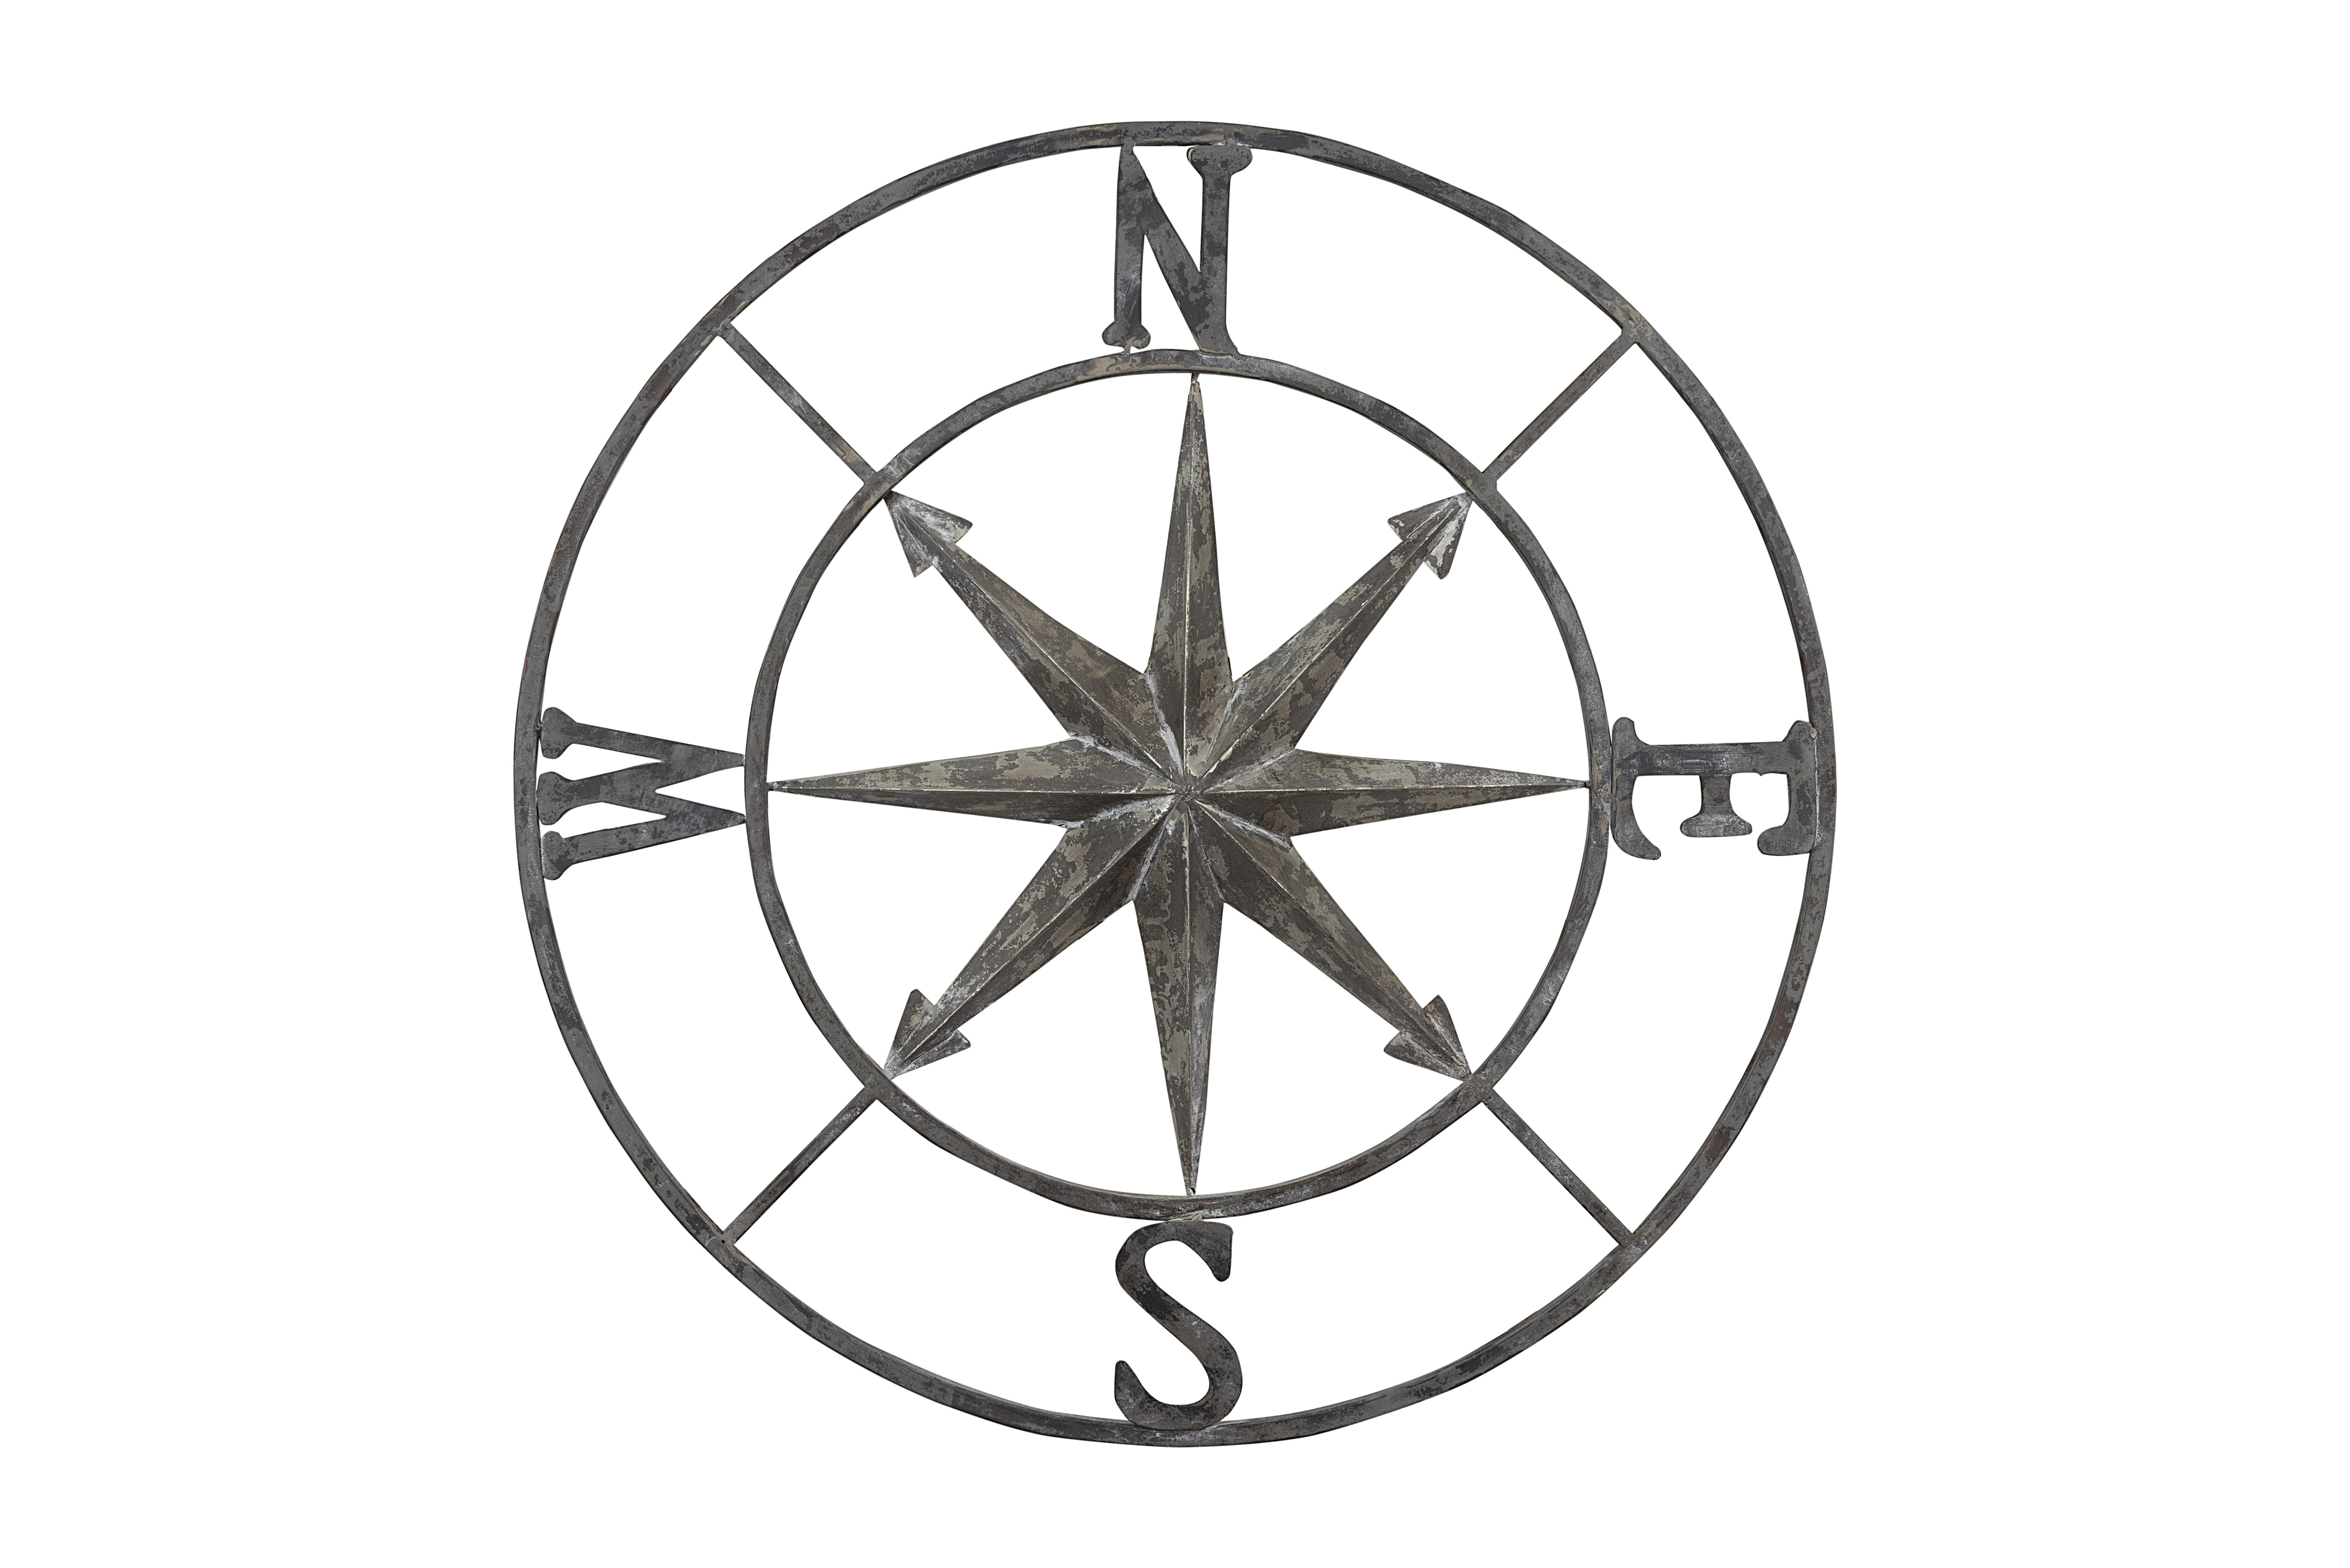 Round Compass Wall Décor intended for Round Compass Wall Decor (Image 23 of 30)